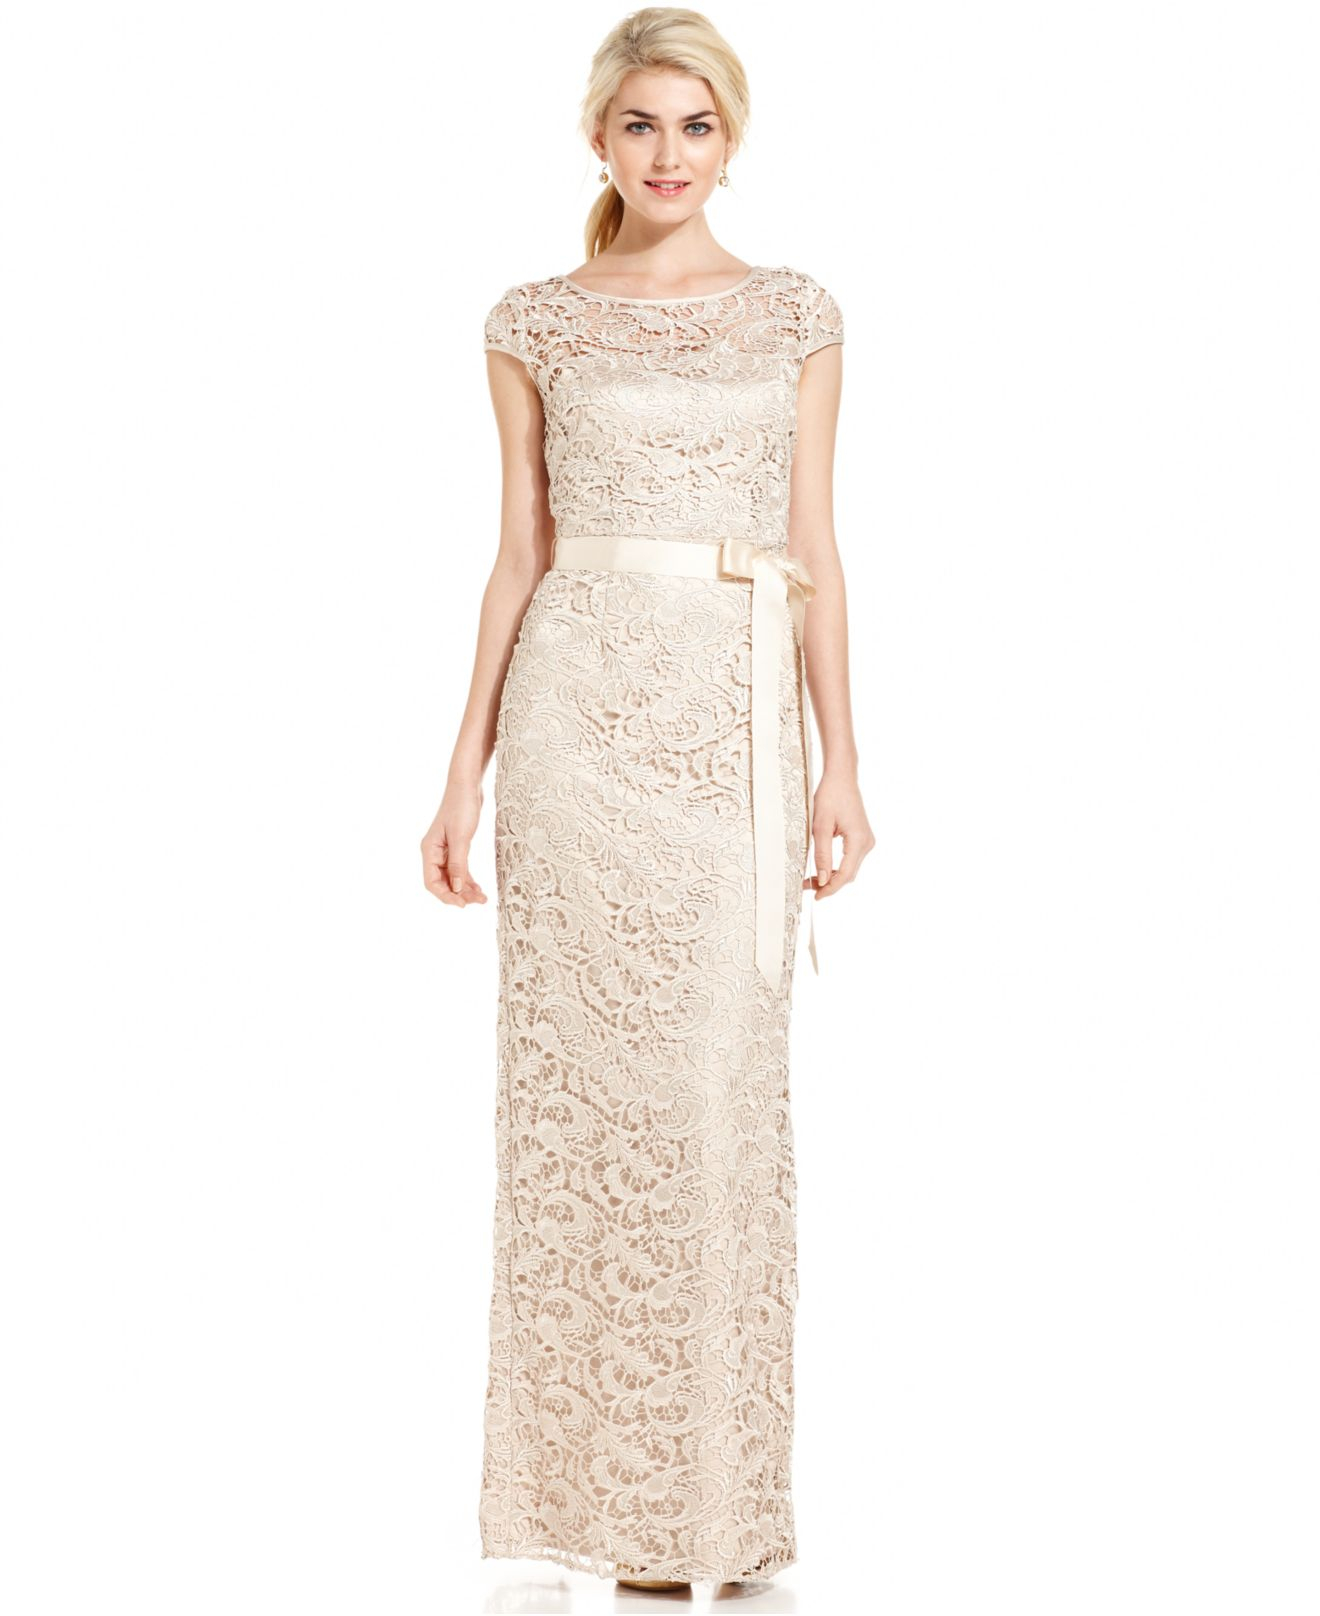 Lyst - Adrianna Papell Cap-sleeve Illusion Lace Gown in Natural